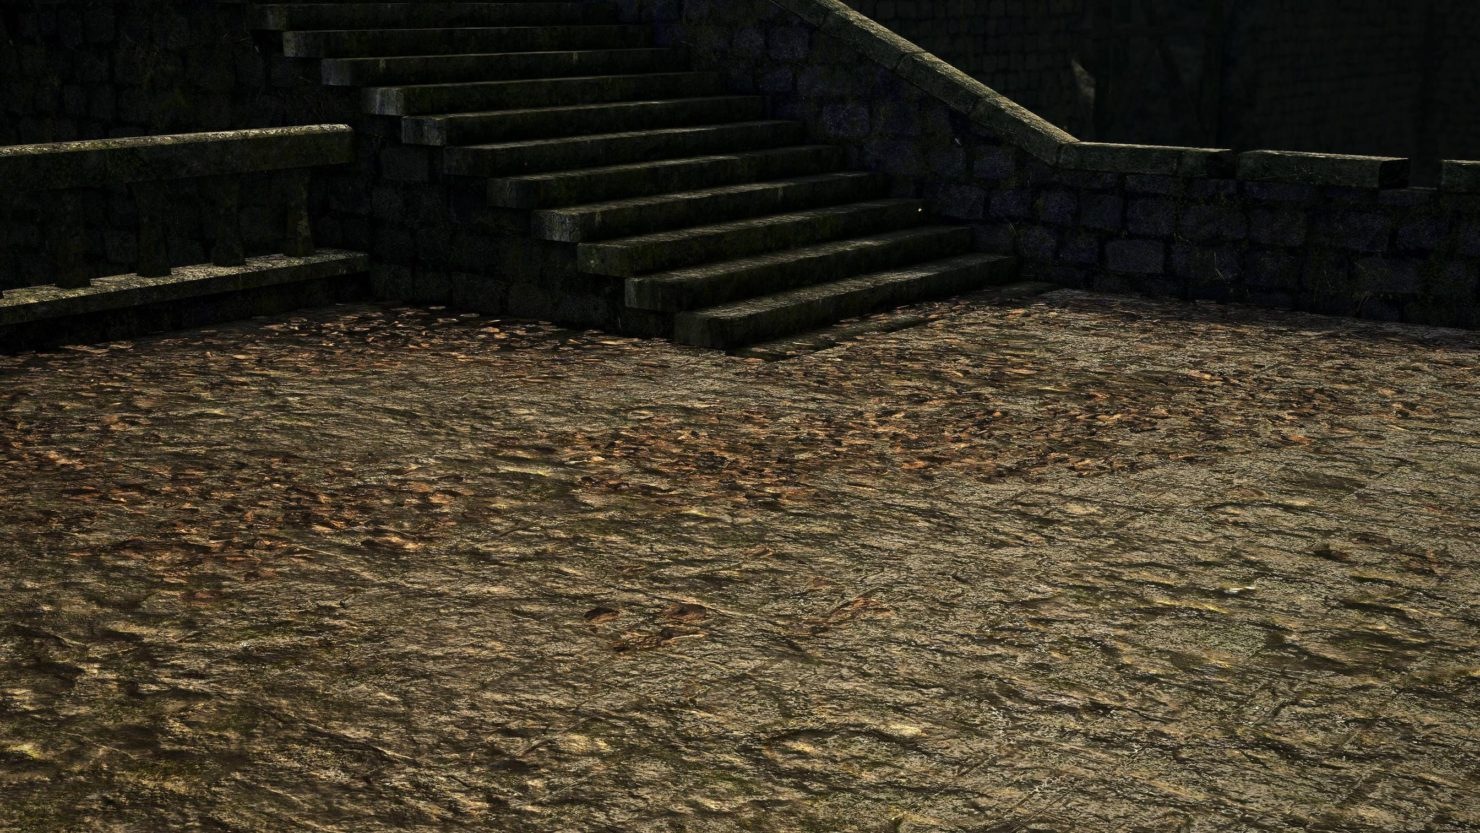 Dark Souls Remastered Ultra Hd Texture Pack Mod Adds Over